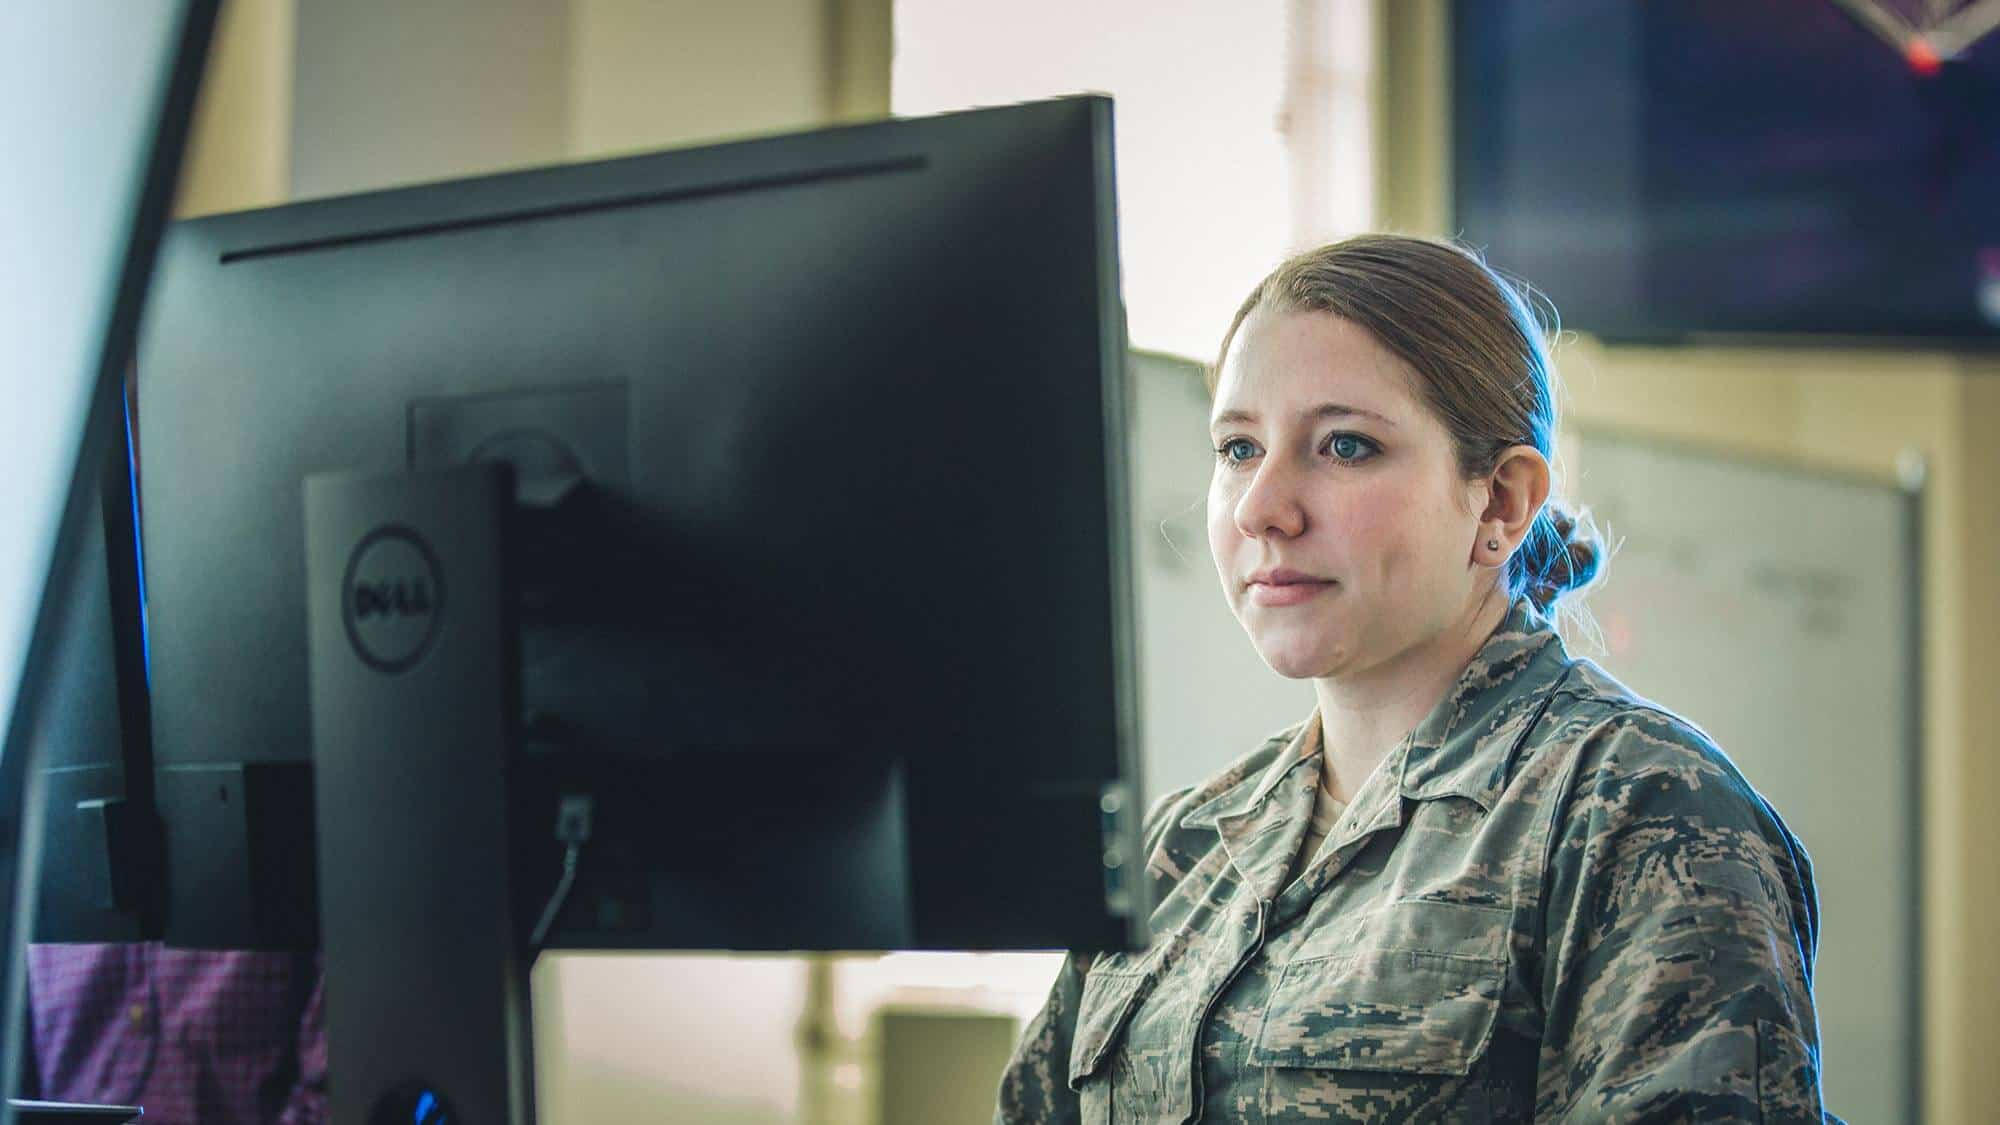 A military student at Regent University: We have consistently been recognized as a military friendly school.